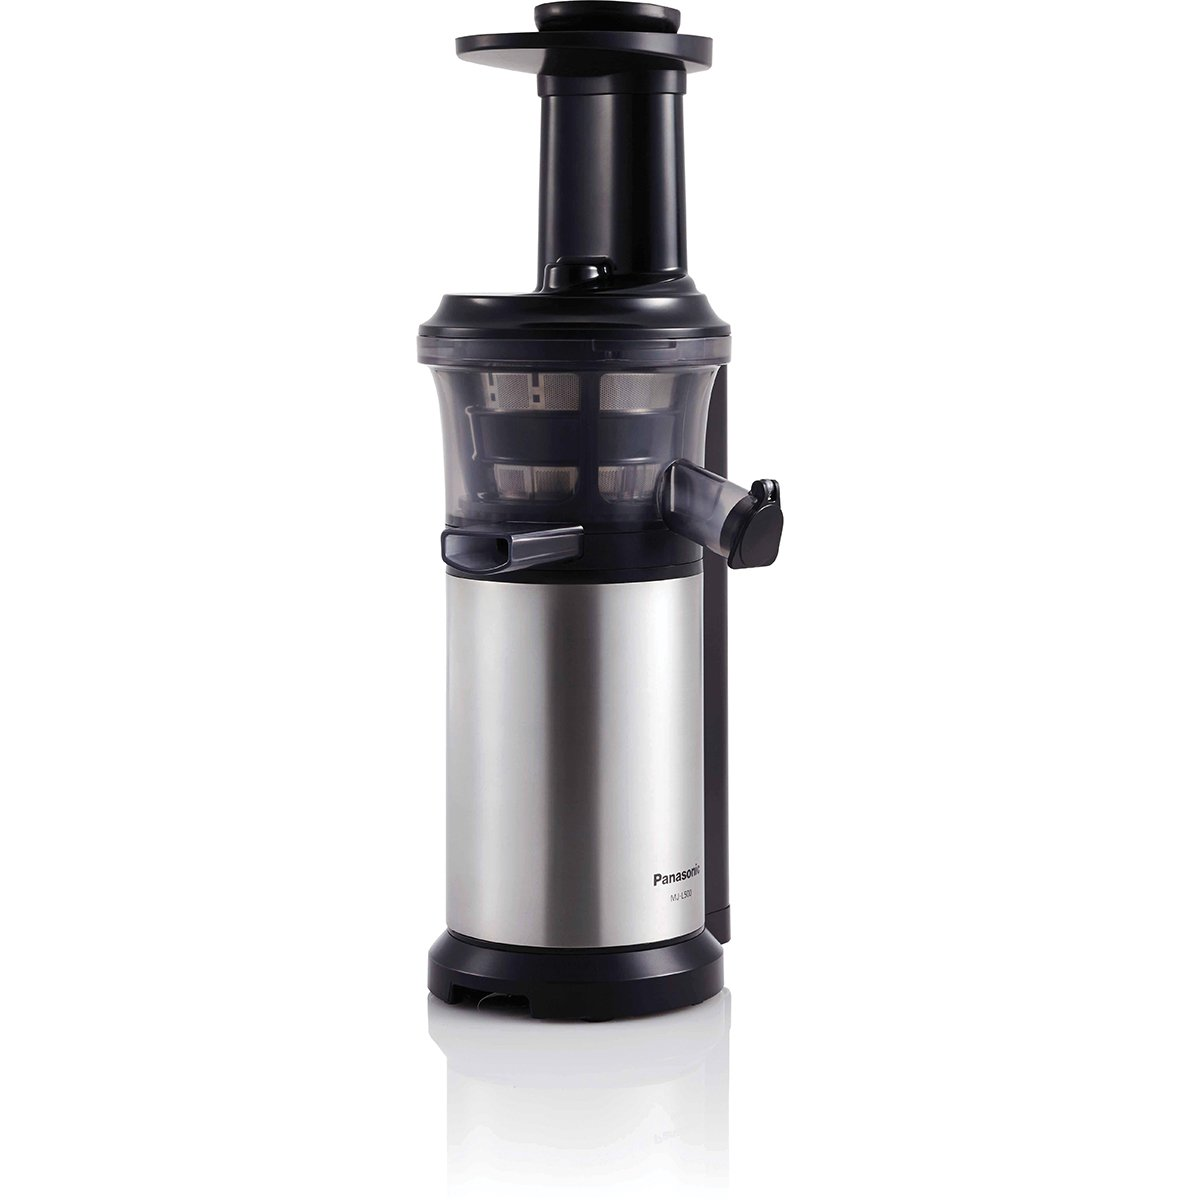 Panasonic Slow Juicer Review : Panasonic MJ-L500SST Slow Juicer Appliances Online